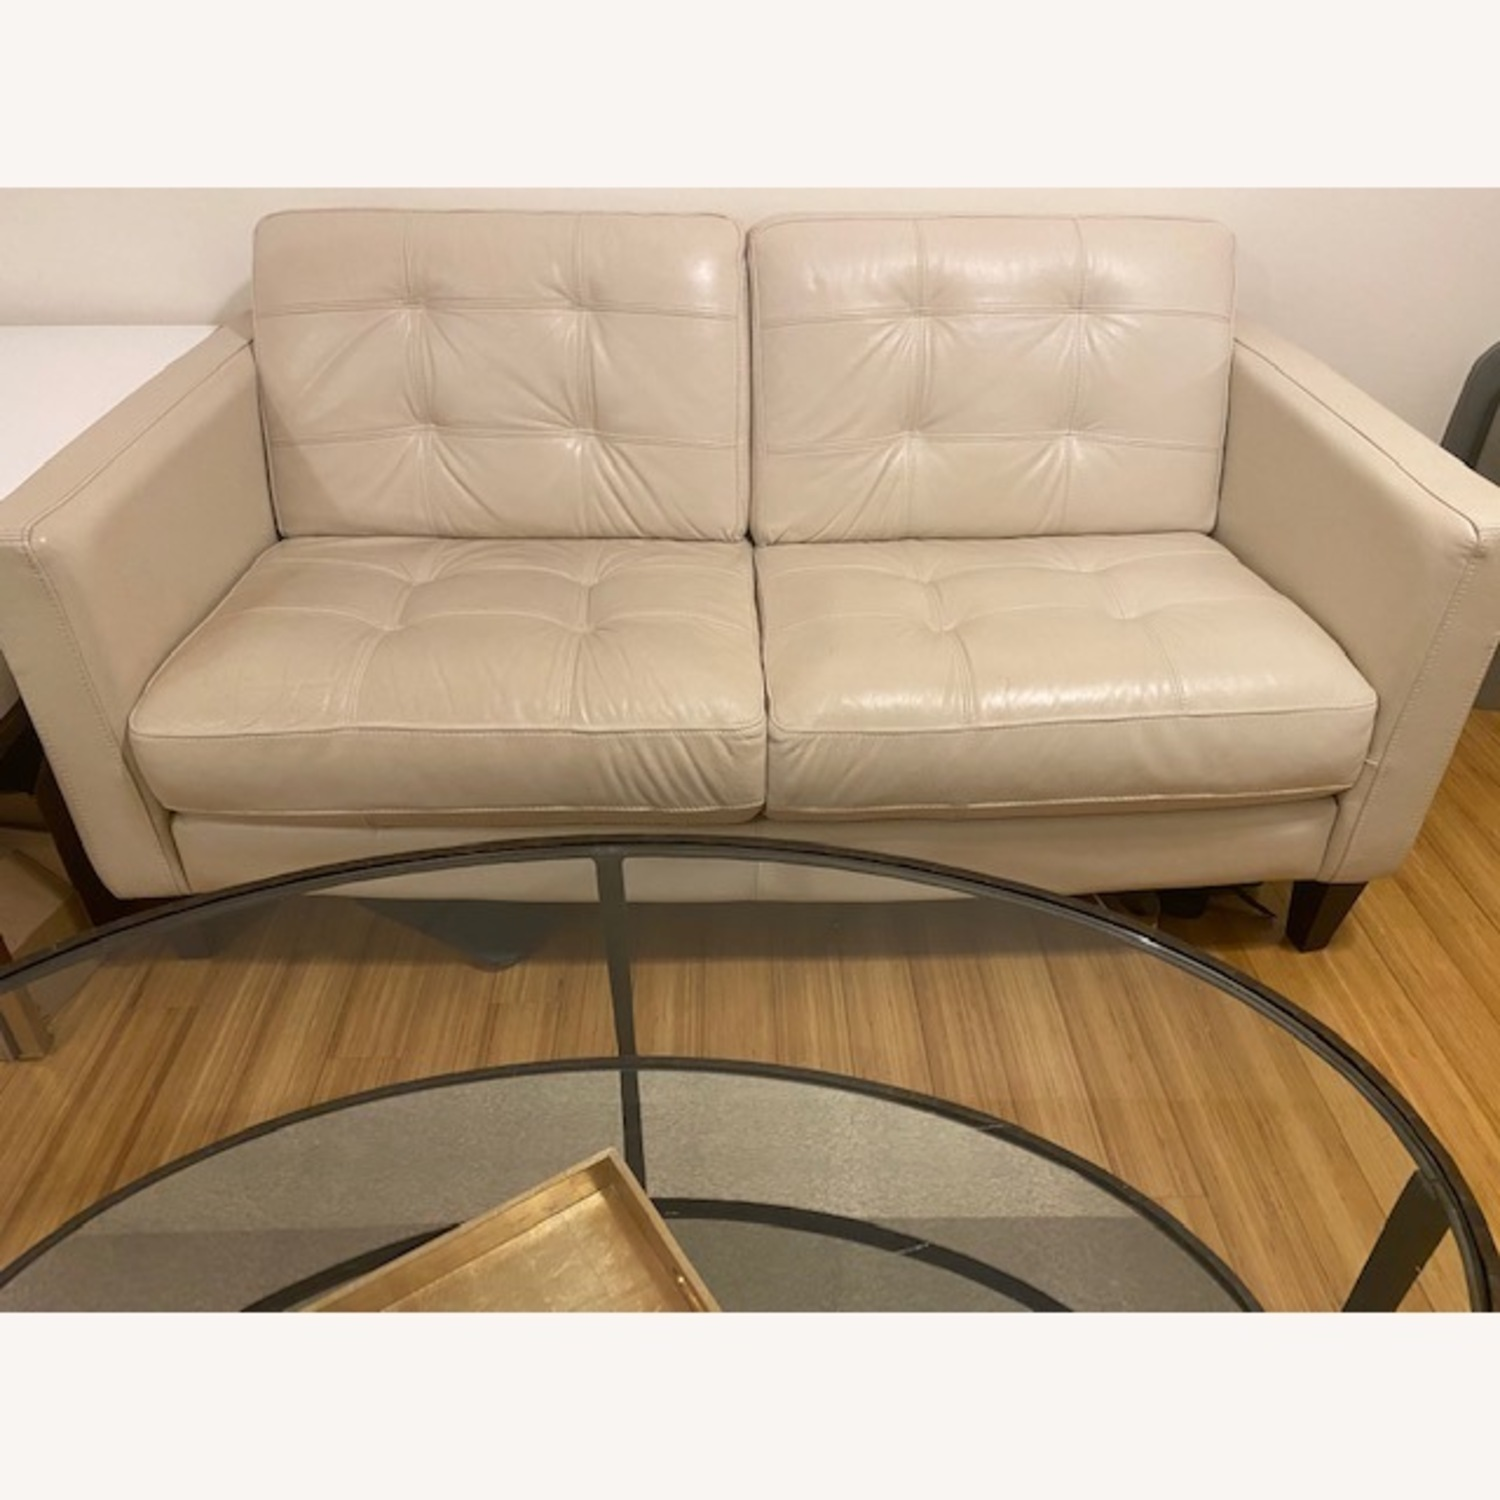 Macy's Leather Tufted Loveseat - image-4